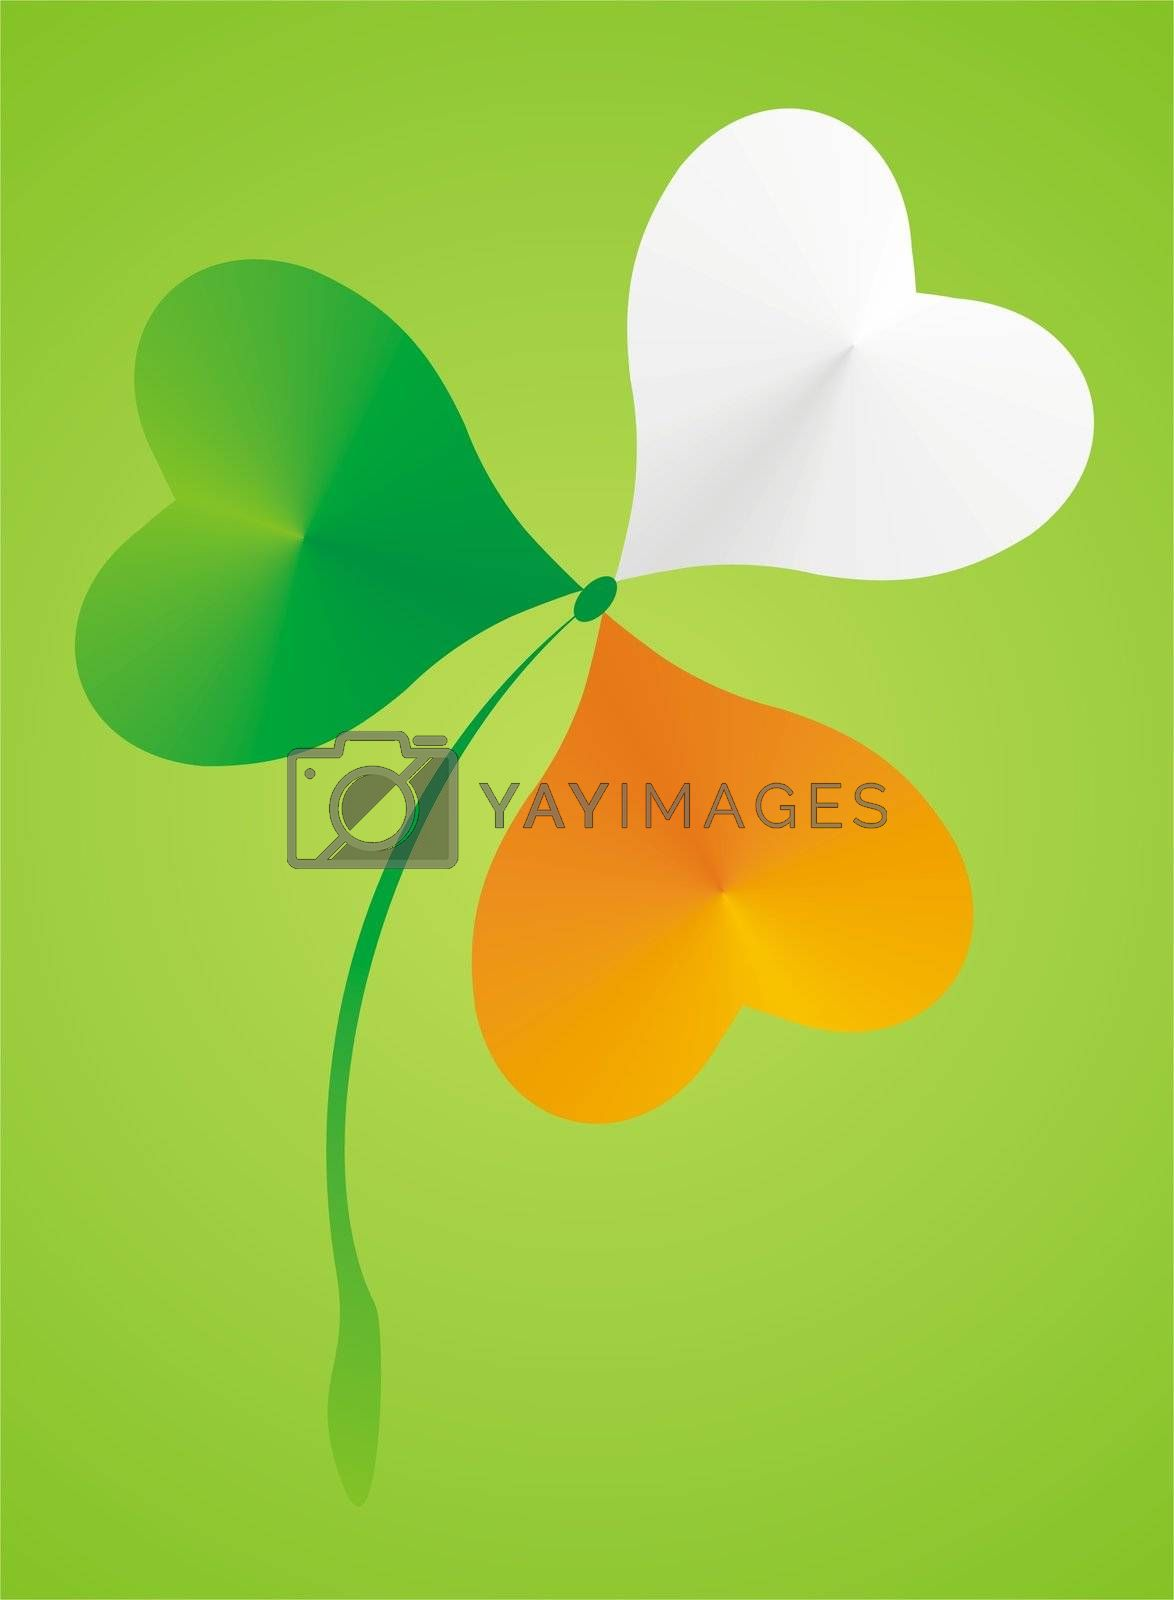 Shamrock clover in the colors of the Irish flag on green background